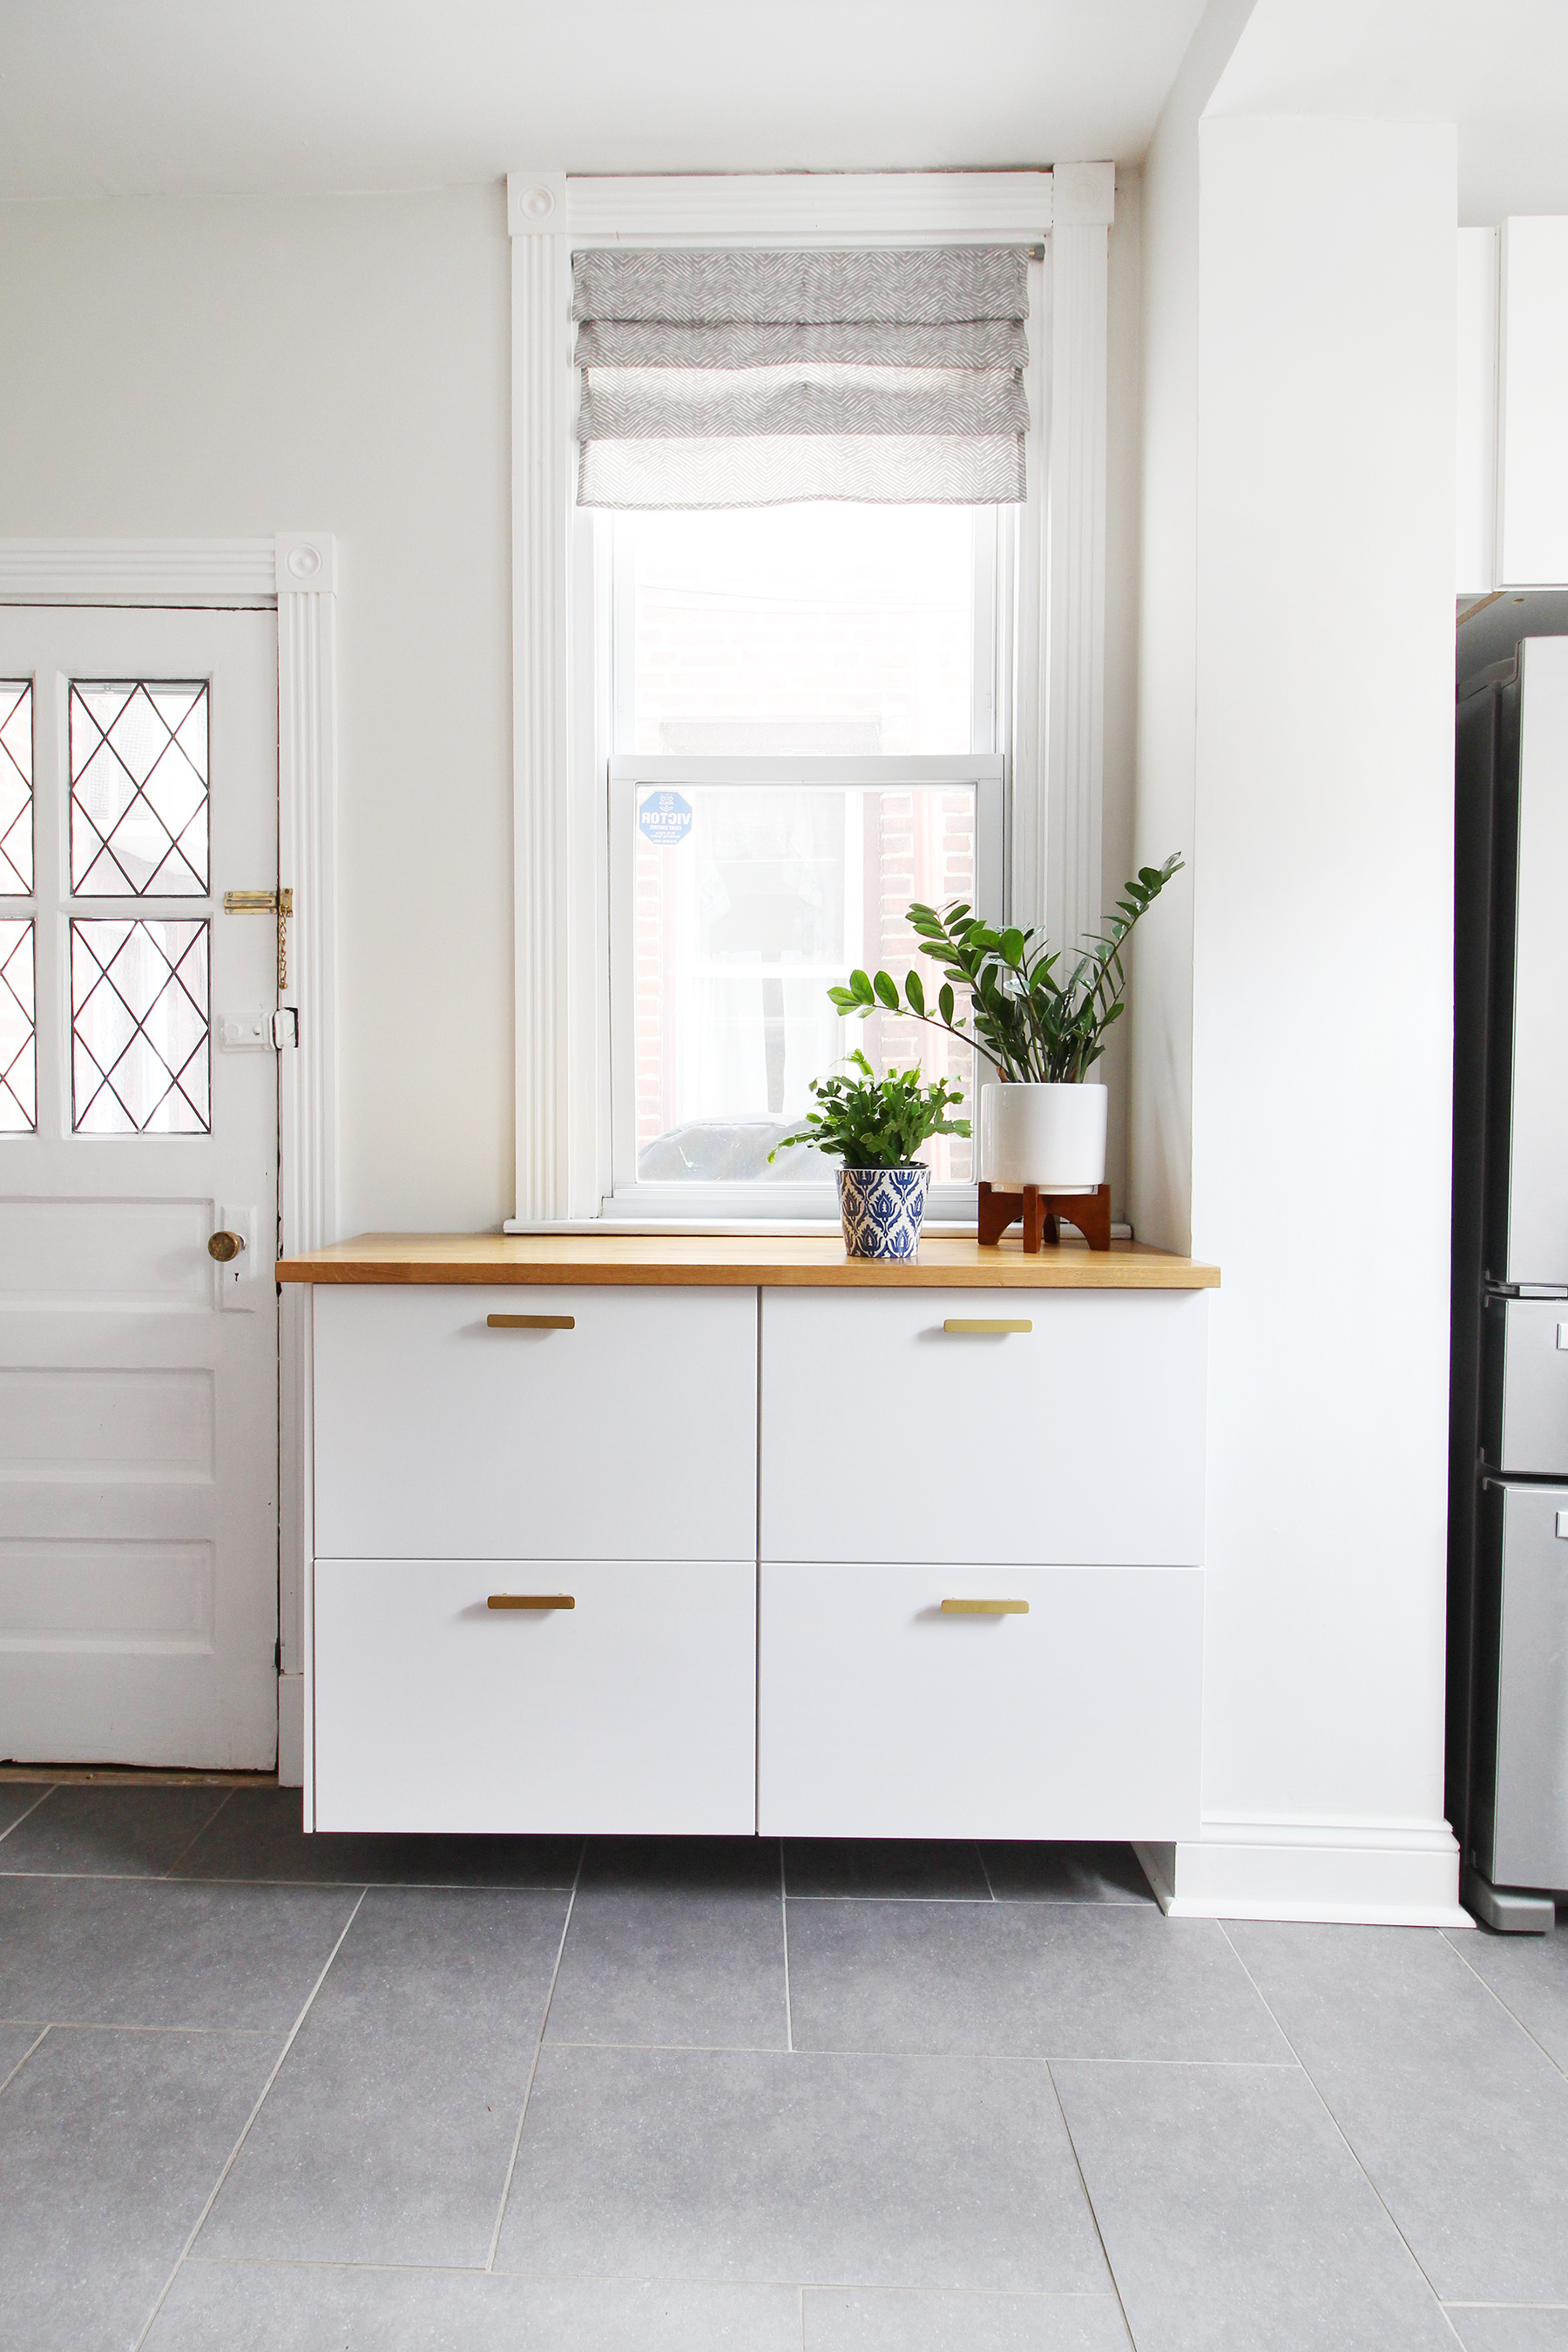 Read my review of our modern white kitchen renovation using IKEA cabinets, Caesarstone countertops, and gray tile floors two years after we renovated. We installed butcher block on this floating cabinet run and it's still going strong!